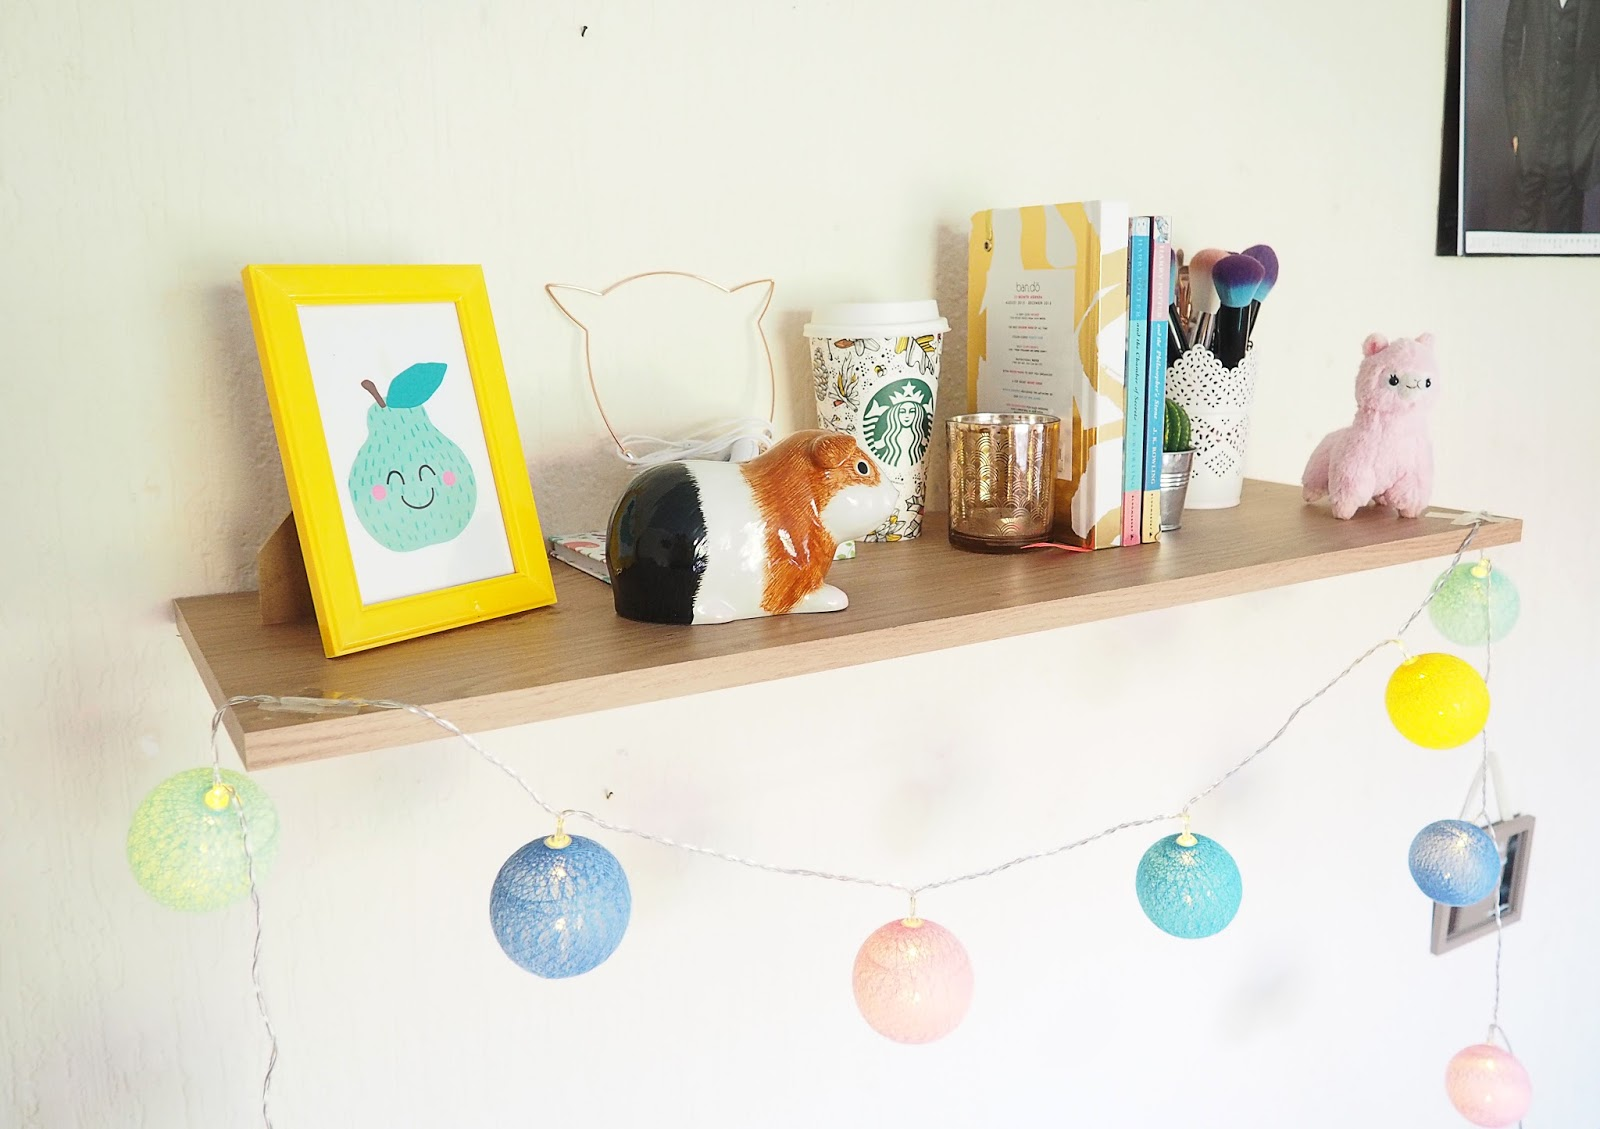 Epic Yep something as simple as a shelf decorated with fairy lights obv filled with all your sentimental bits and bobs will